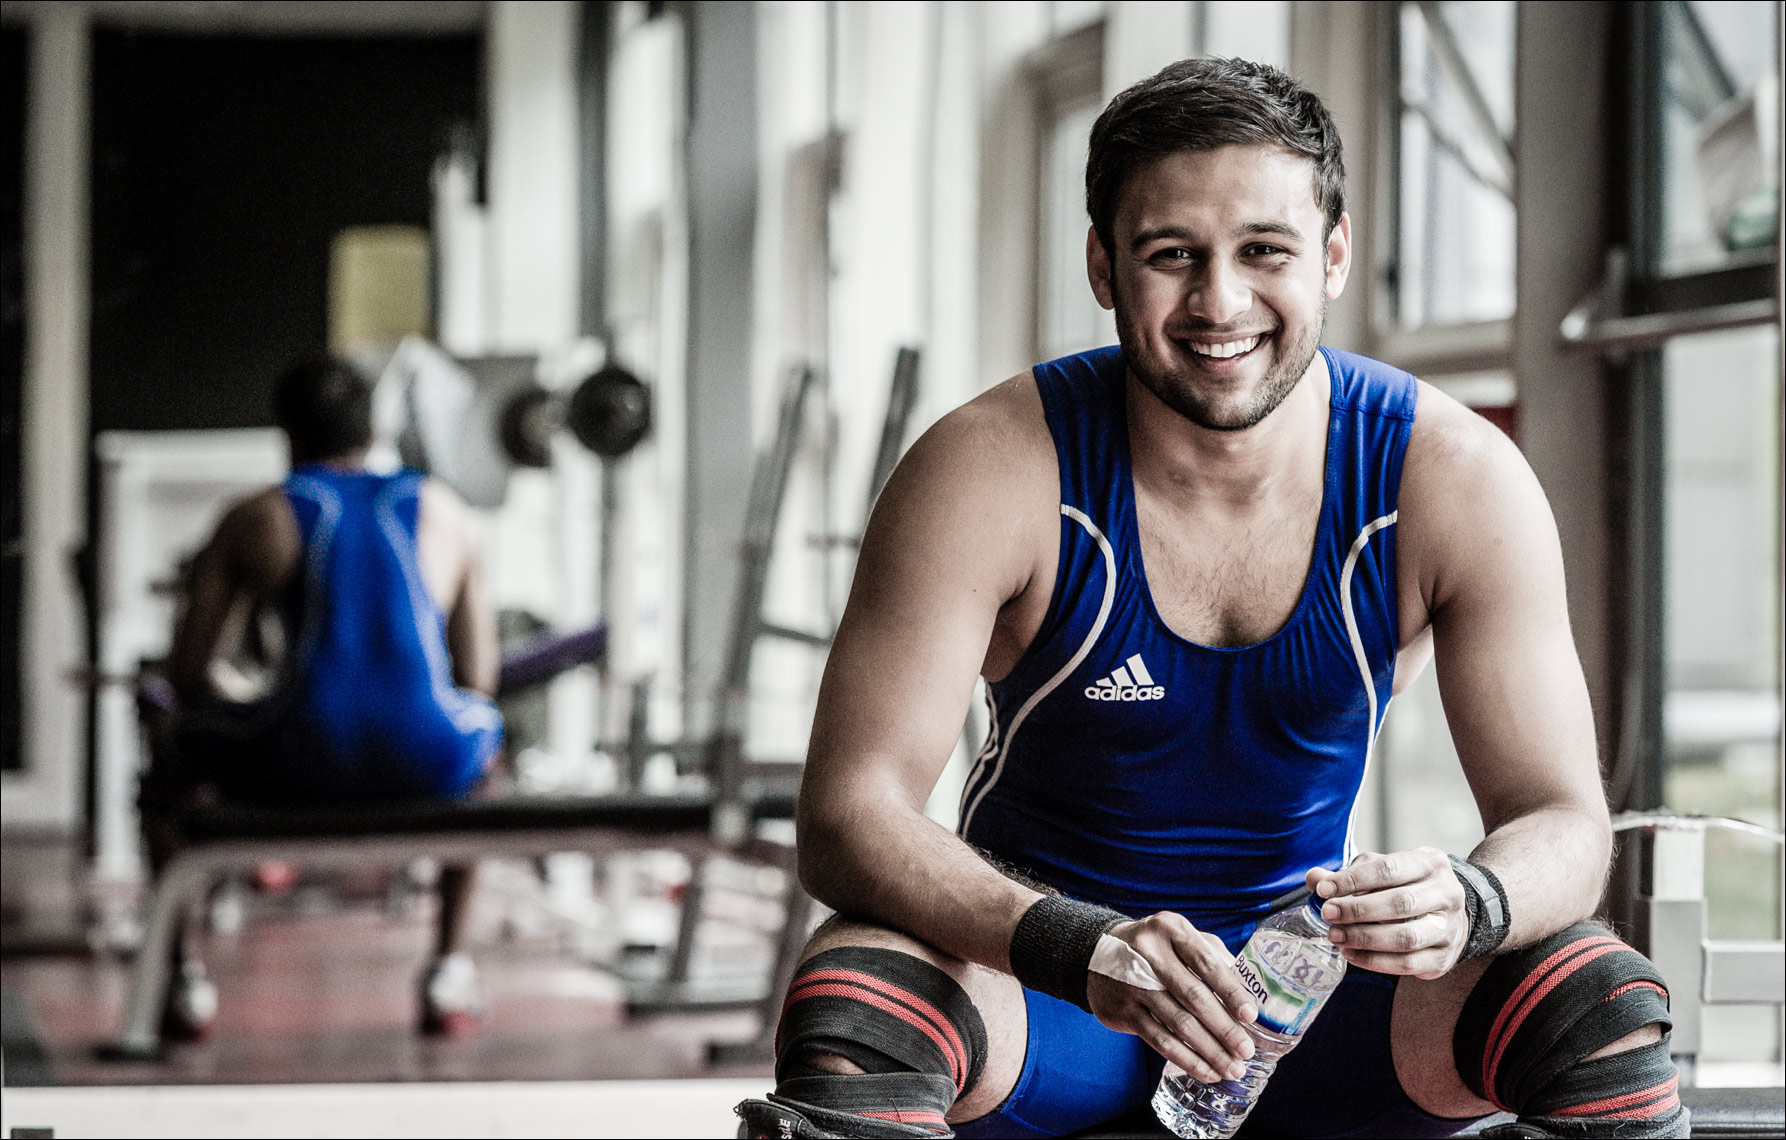 new GCU-Harris-Ansari-Weightlifter-007820032 Glasgow University Paul Hampton Photographer